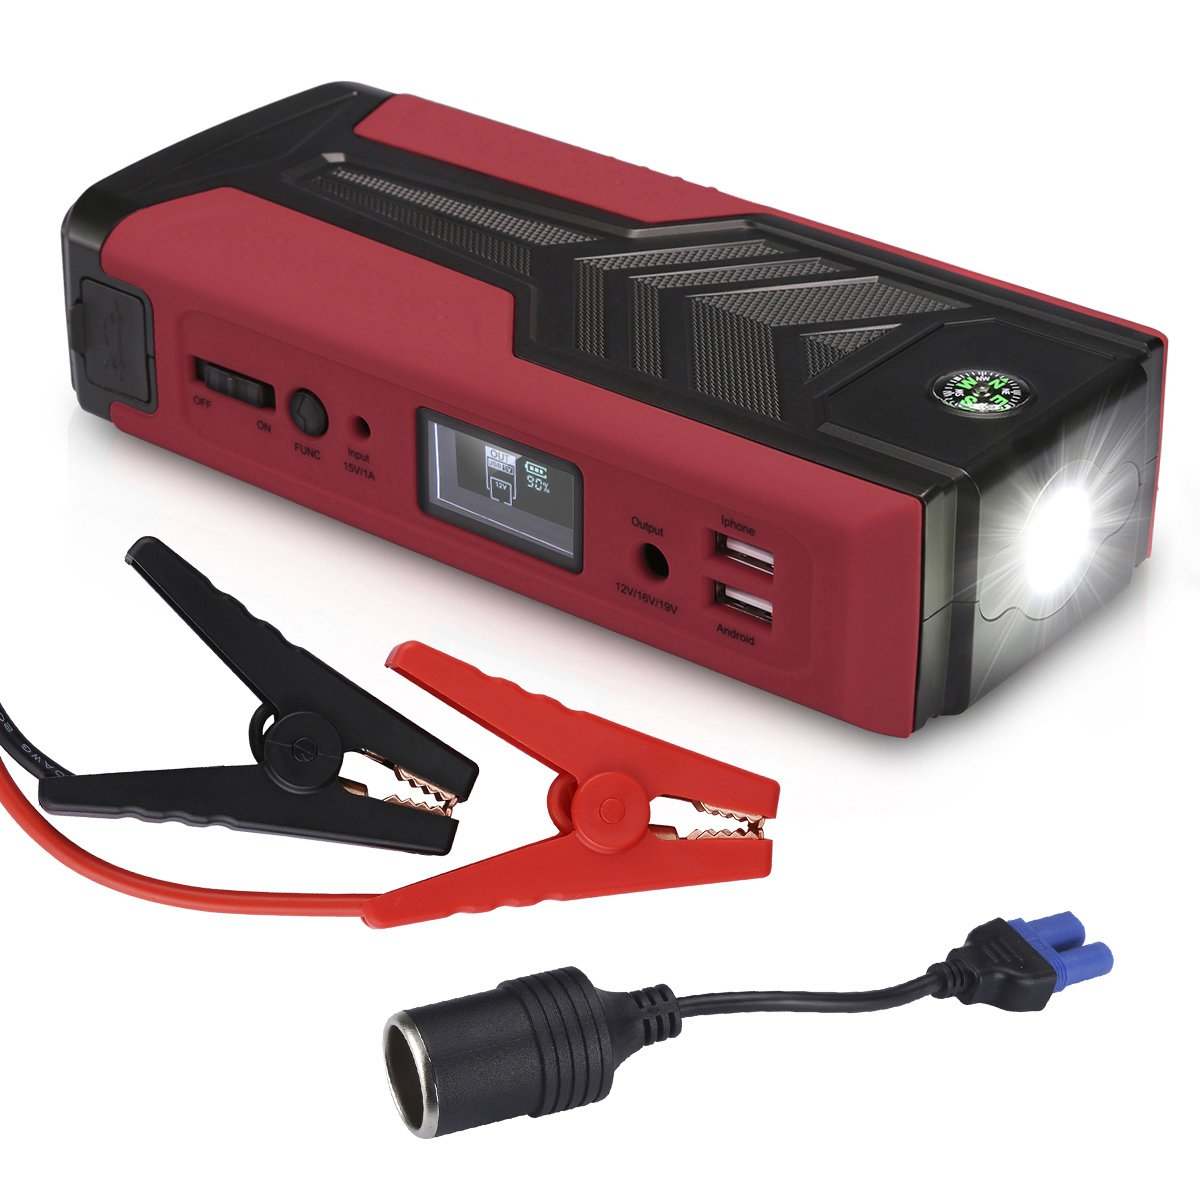 FLOUREON 18000mAh 500 Amp Peak Portable Car Jump Starter, 12V Auto Battery Booster Car Battery Jump Start (Up to Gas6.5L/Diesel5.0L) for Automotive, Motorcycle, Tractor, Boat, Engines